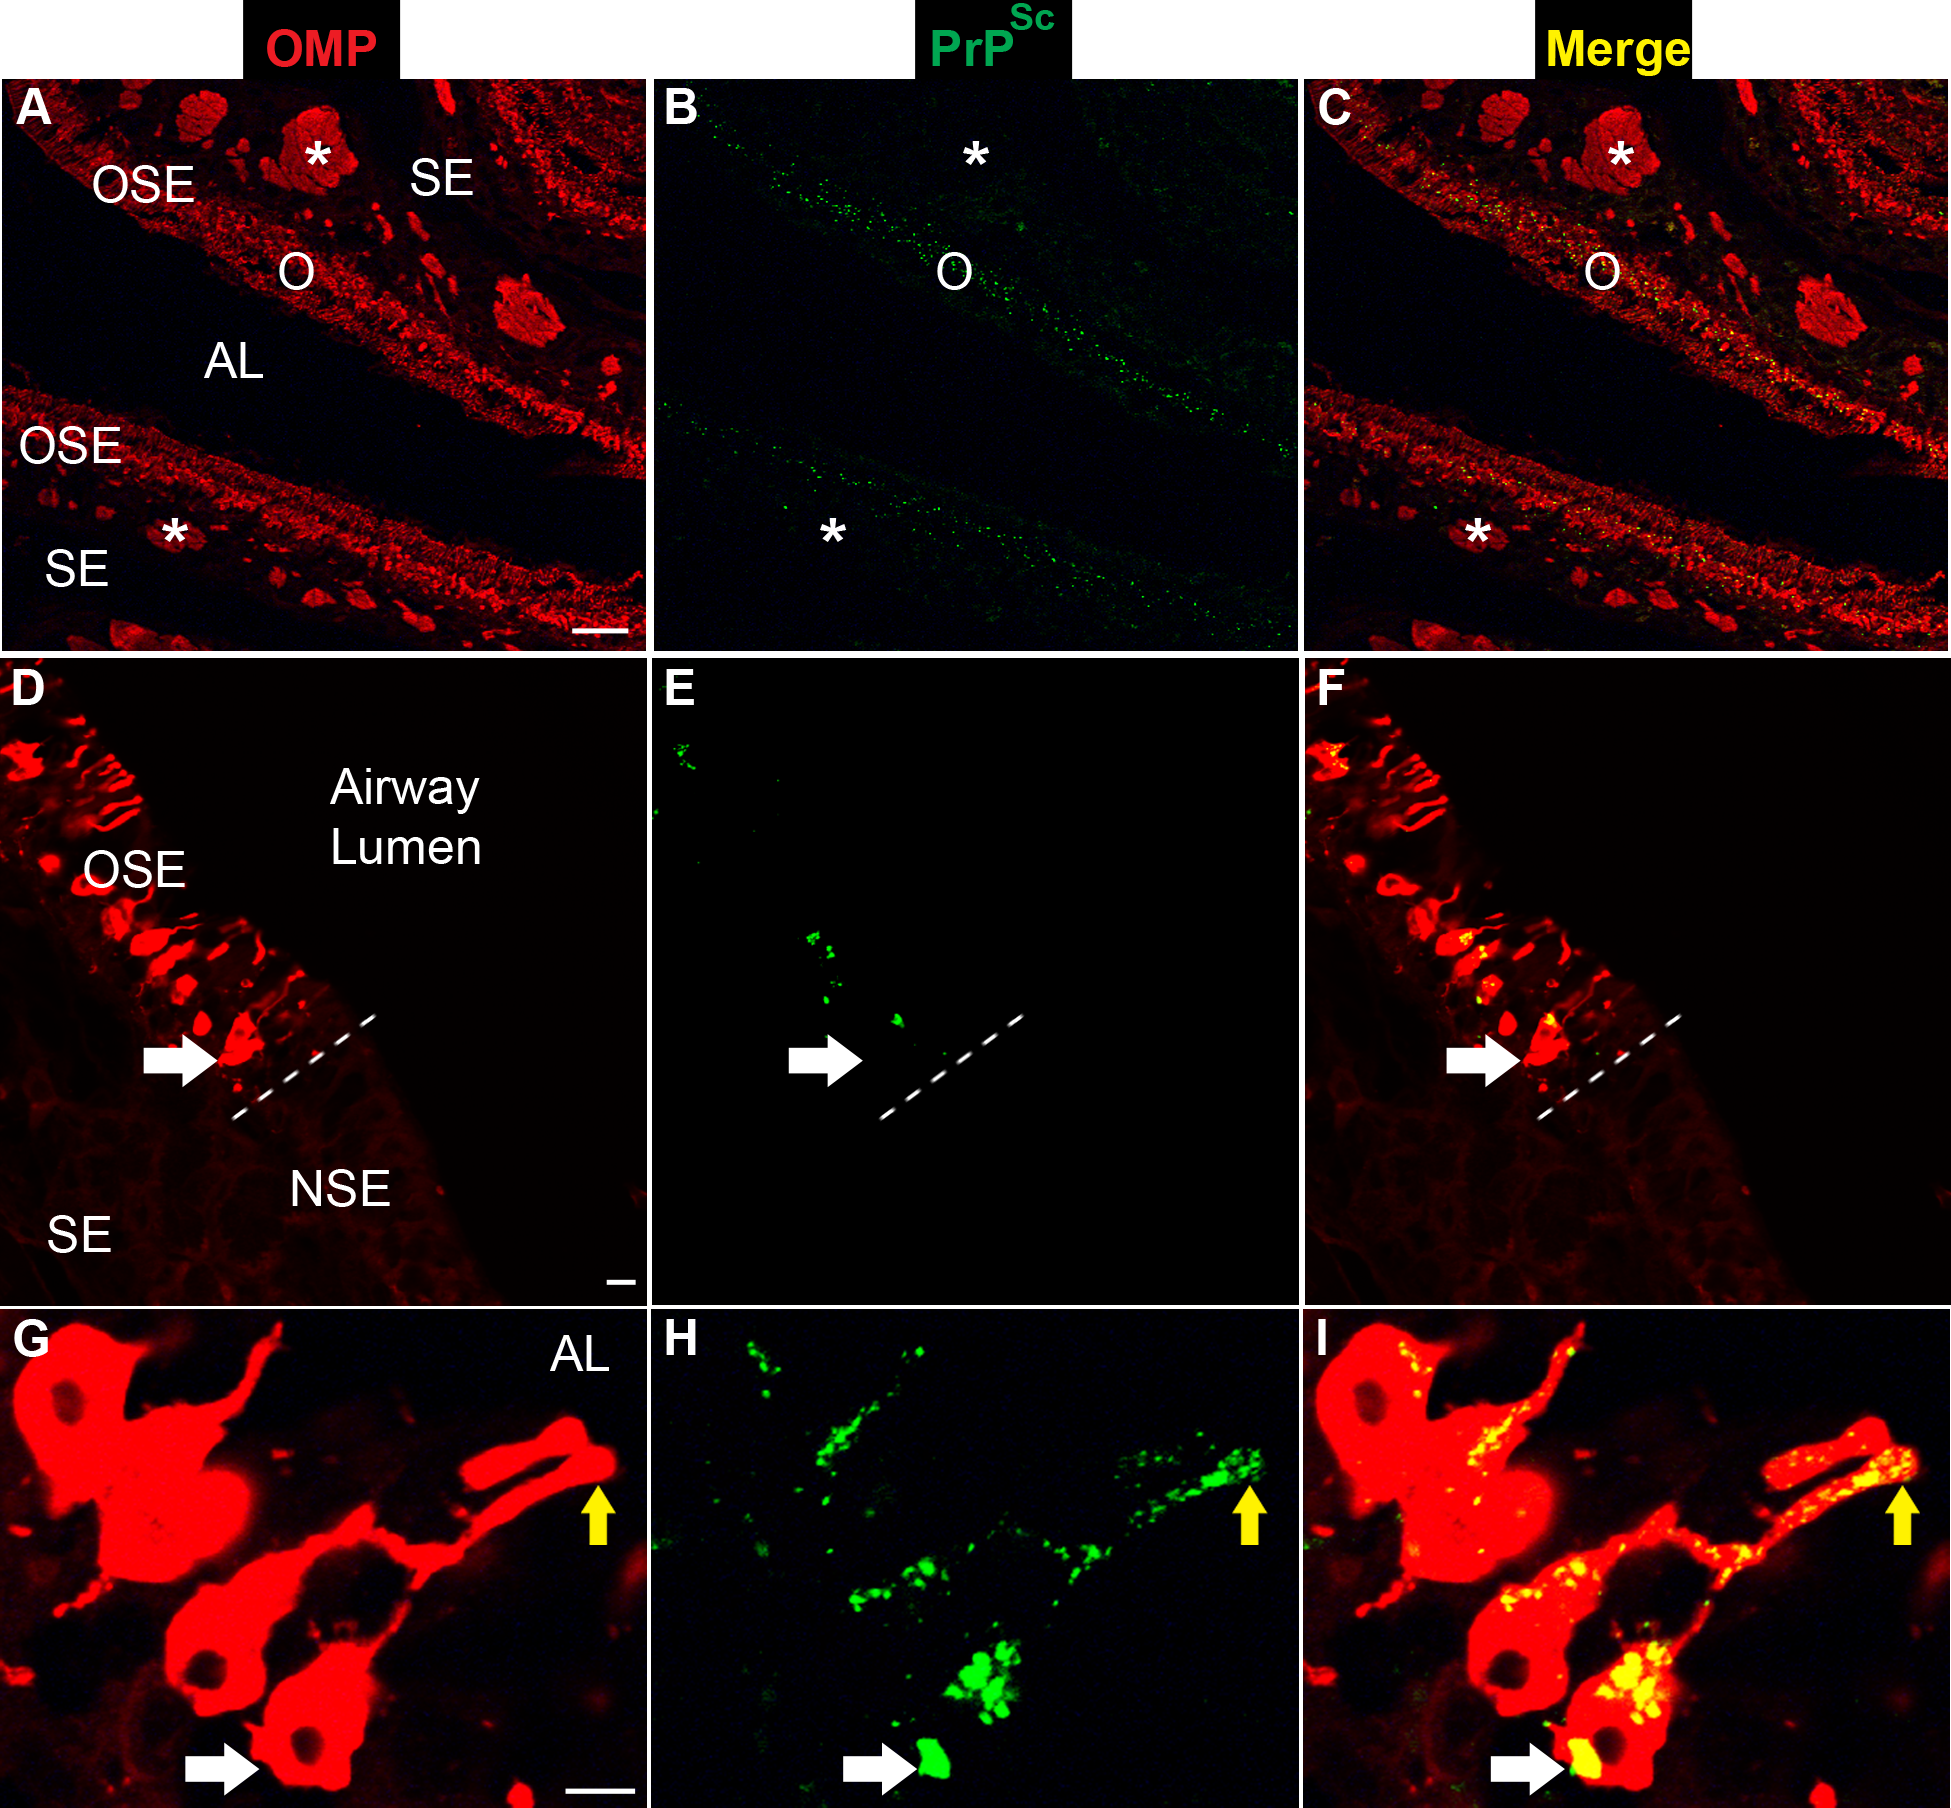 Distribution of PrP<sup>Sc</sup> in olfactory sensory epithelium following intra-olfactory bulb inoculation of the HY TME agent.